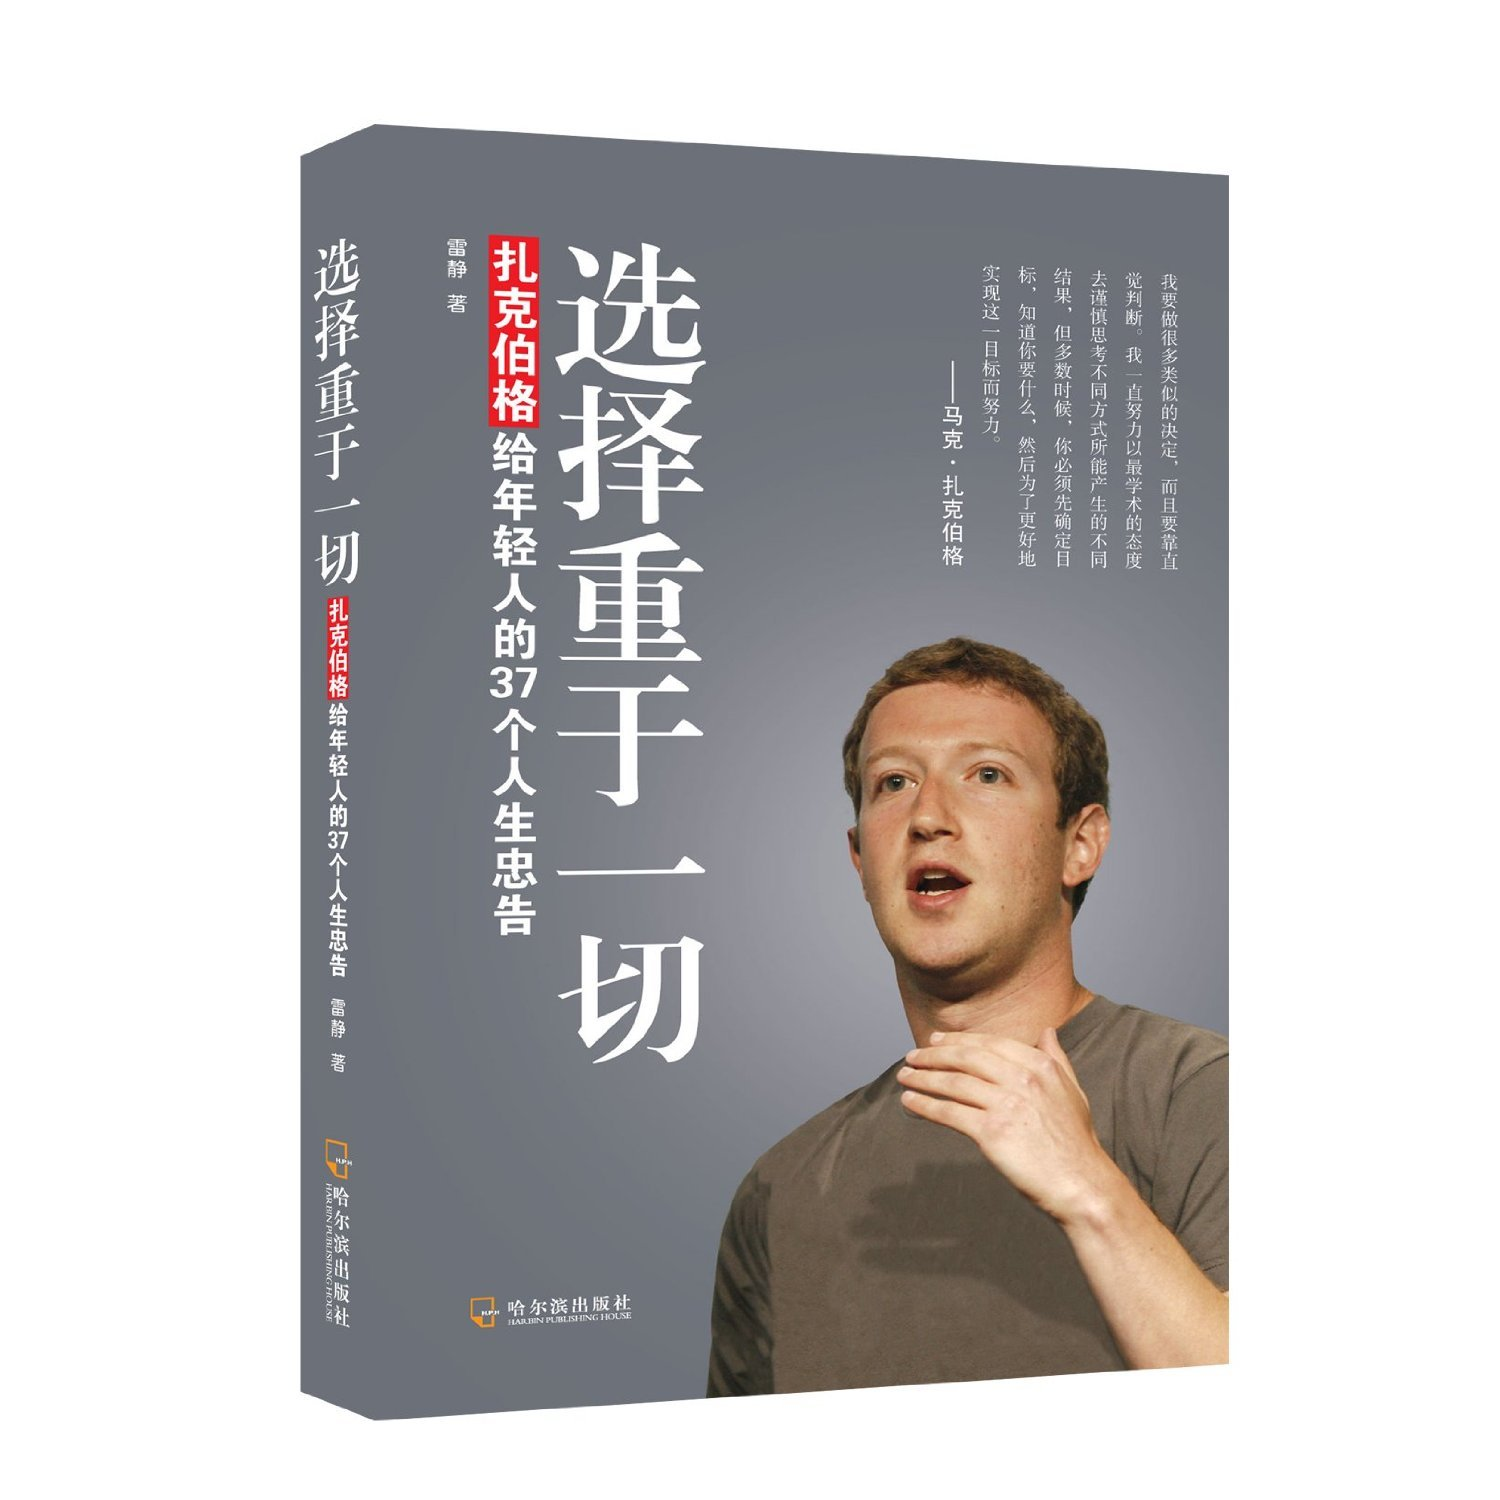 Choice Overweighs Anything Else(Zuckerbergs 37 pieces advice to young people) (Chinese Edition) pdf epub